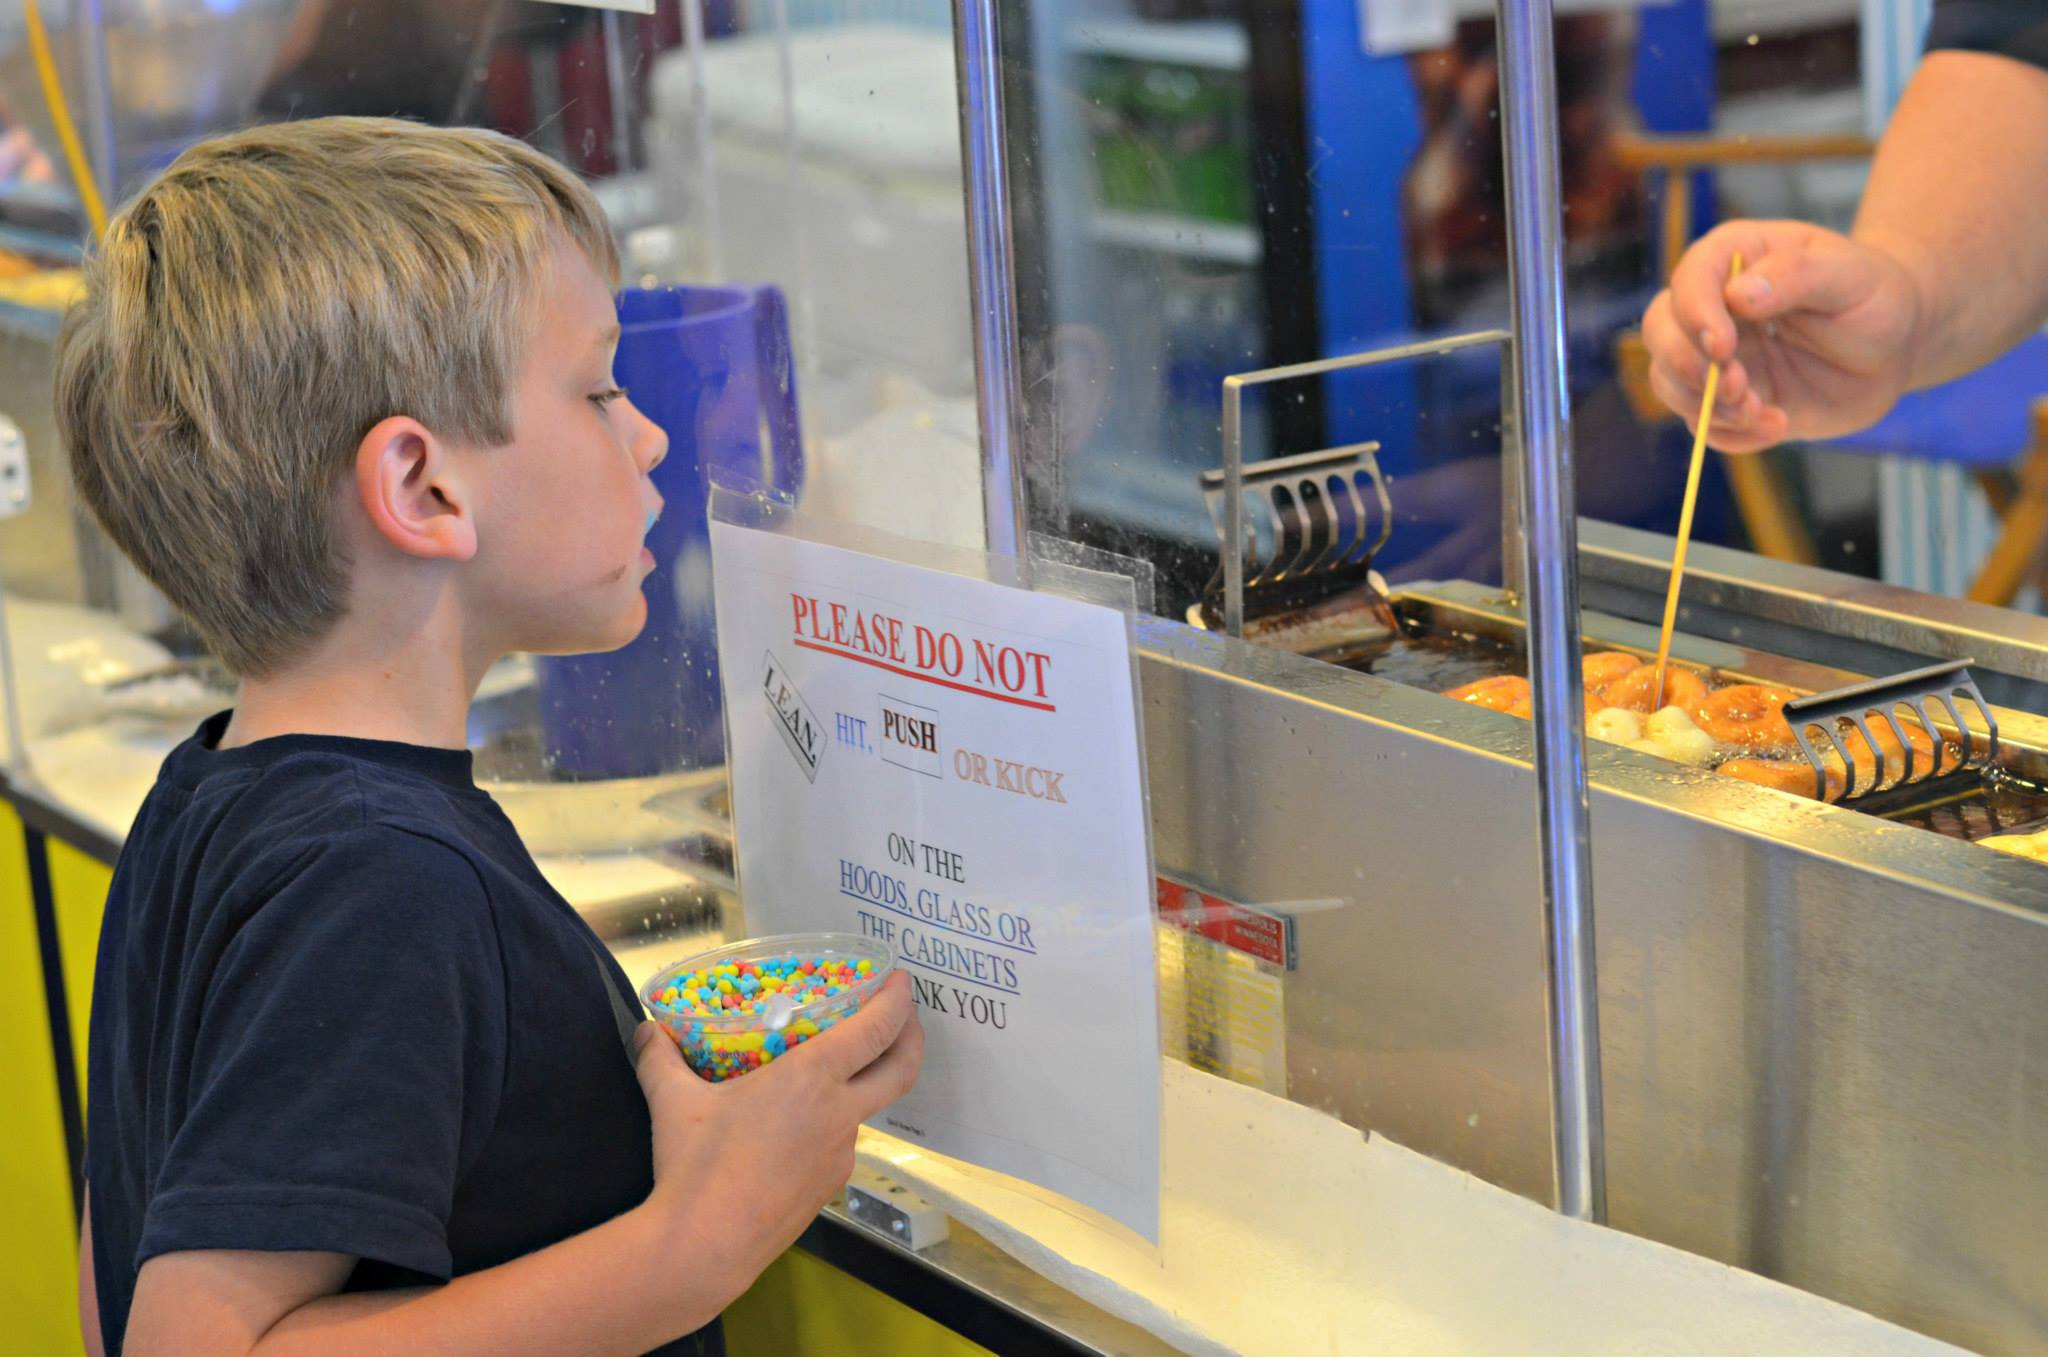 Ways to Save At the San Diego County Fair - save money on food at the fair with Taste of the Fair Tuesdays